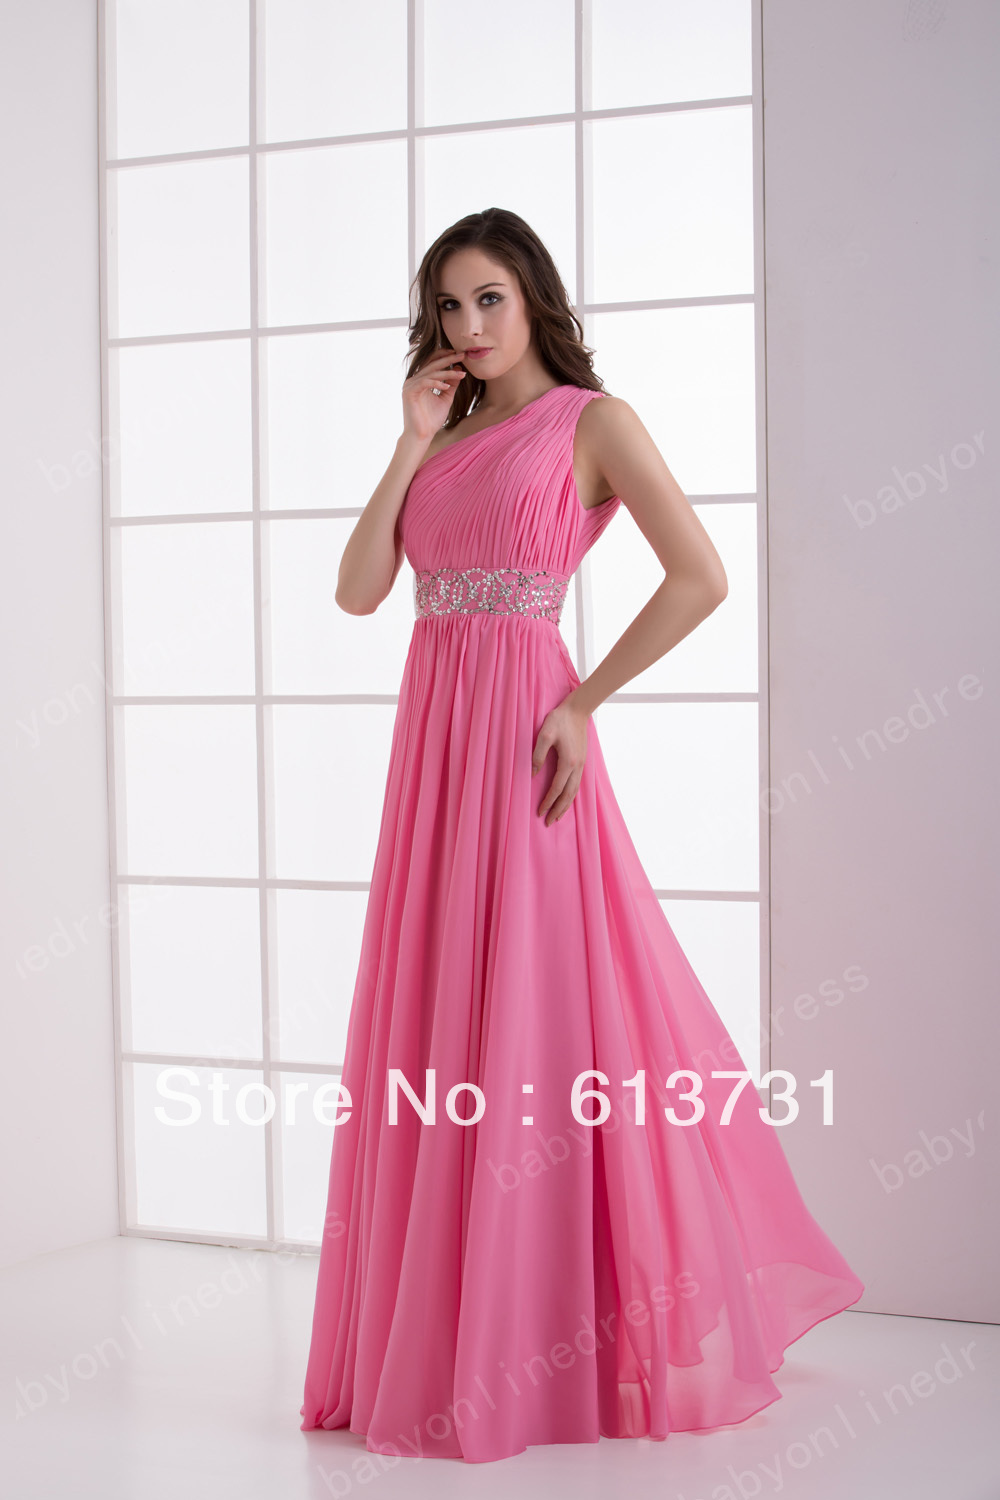 Custom made 2016 new sexy long bright pink evening dresses for Afternoon wedding guest dresses